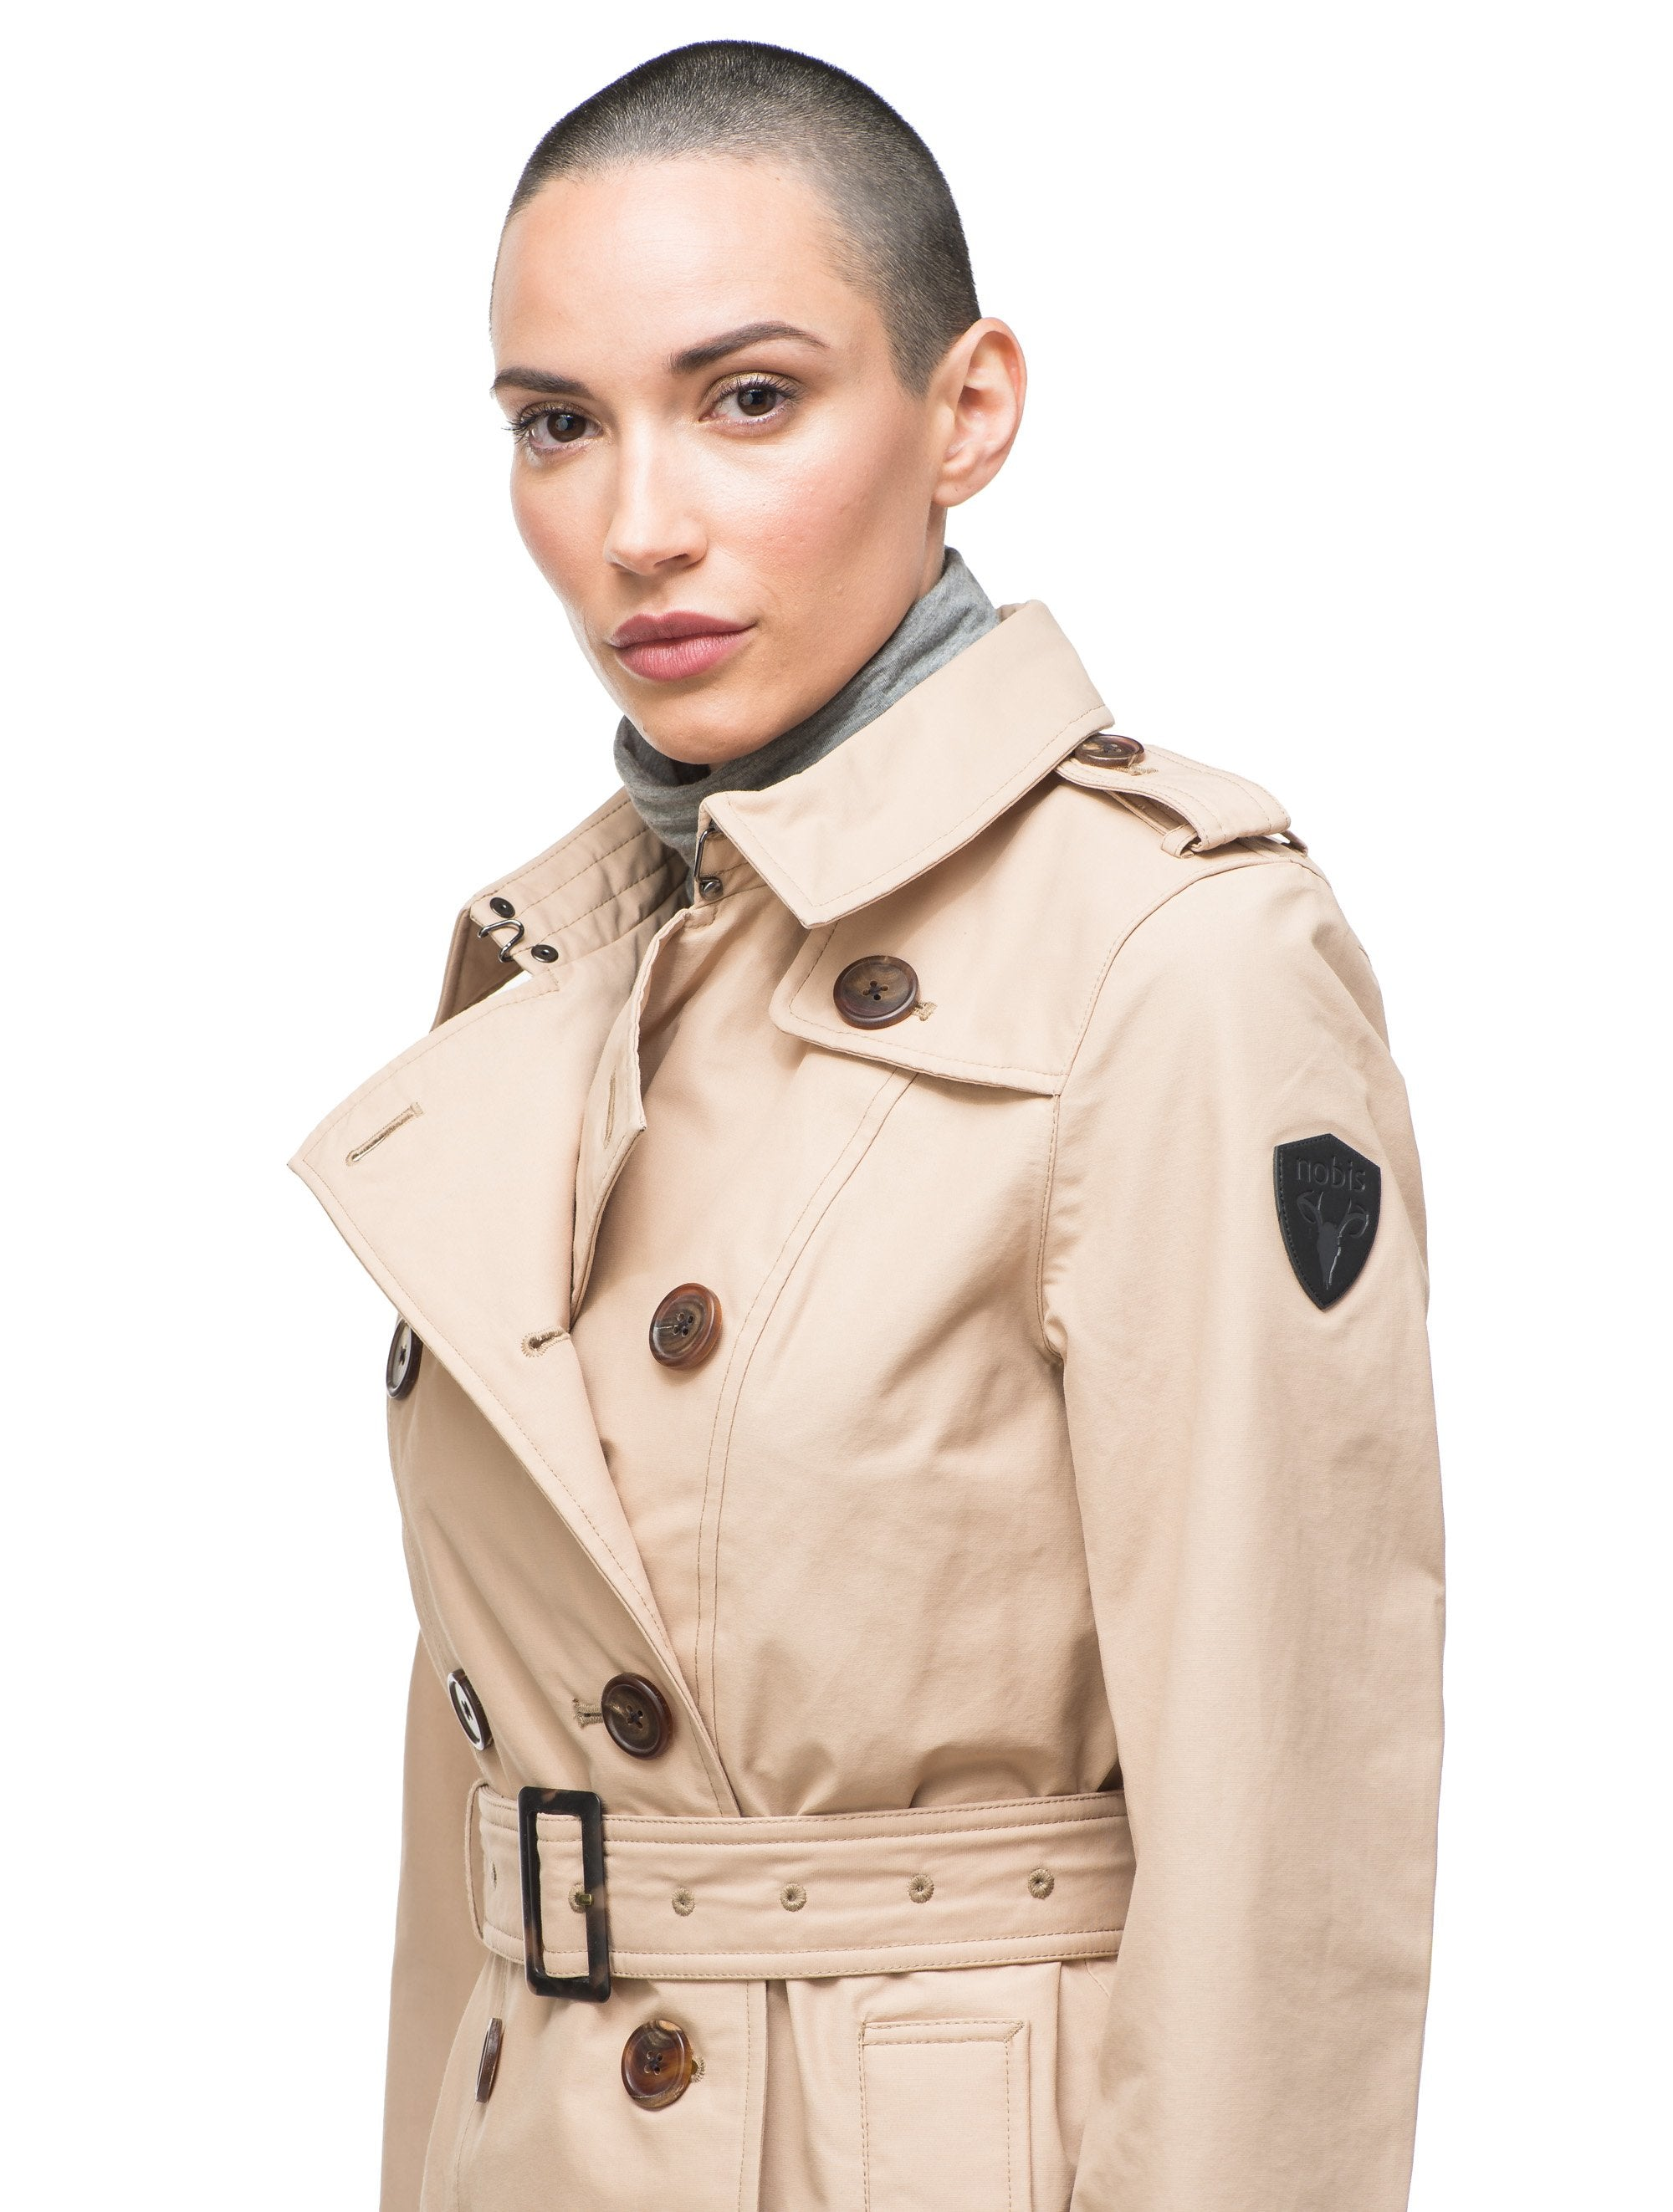 Women's knee length trench coat with removable belt in Fawn | color